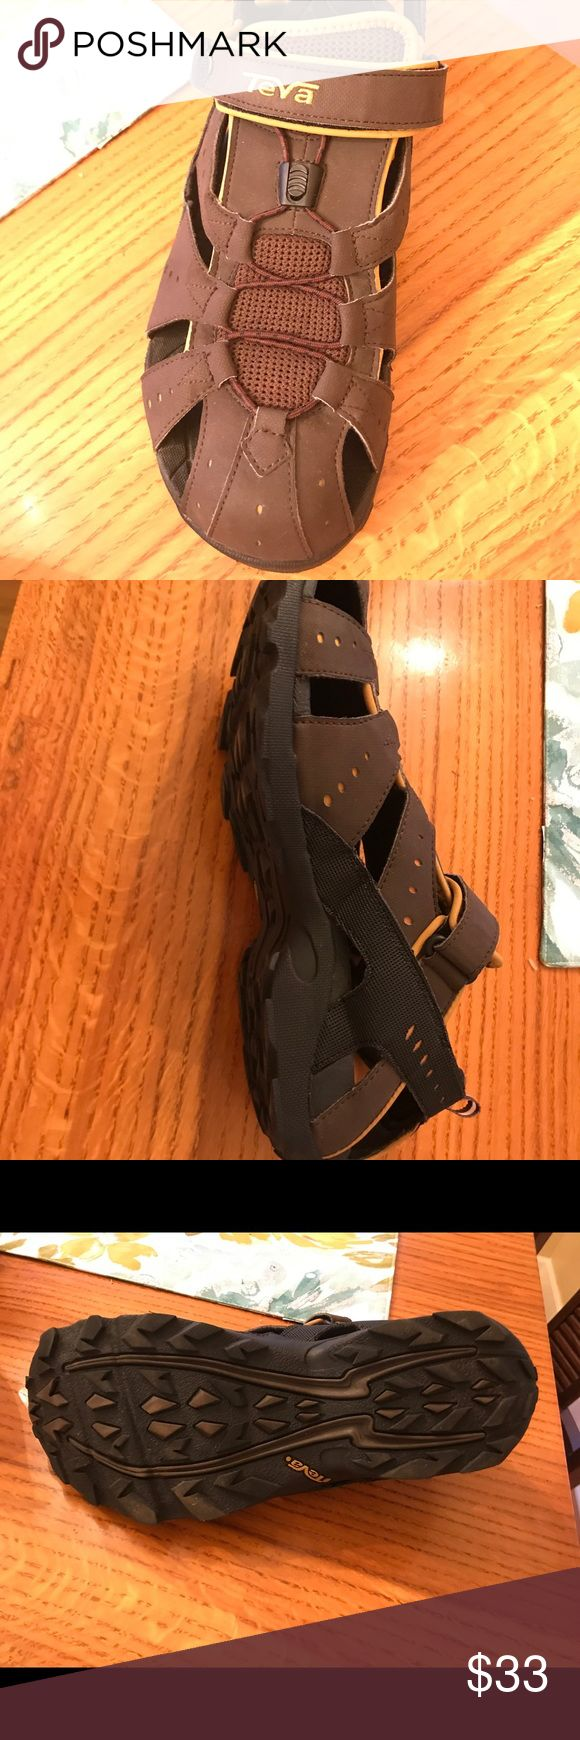 NWOT TEVA MENS SANDALS SIZE 12 NWOT TEVA MENS SANDALS SIZE 12. These run a bit small and my hubby could not wear. $33 FIRM  PERFECT FOR SIZE 11 - 11 1/2! Can supply more pics if needed👍🏻 Teva Shoes Sandals & Flip-Flops